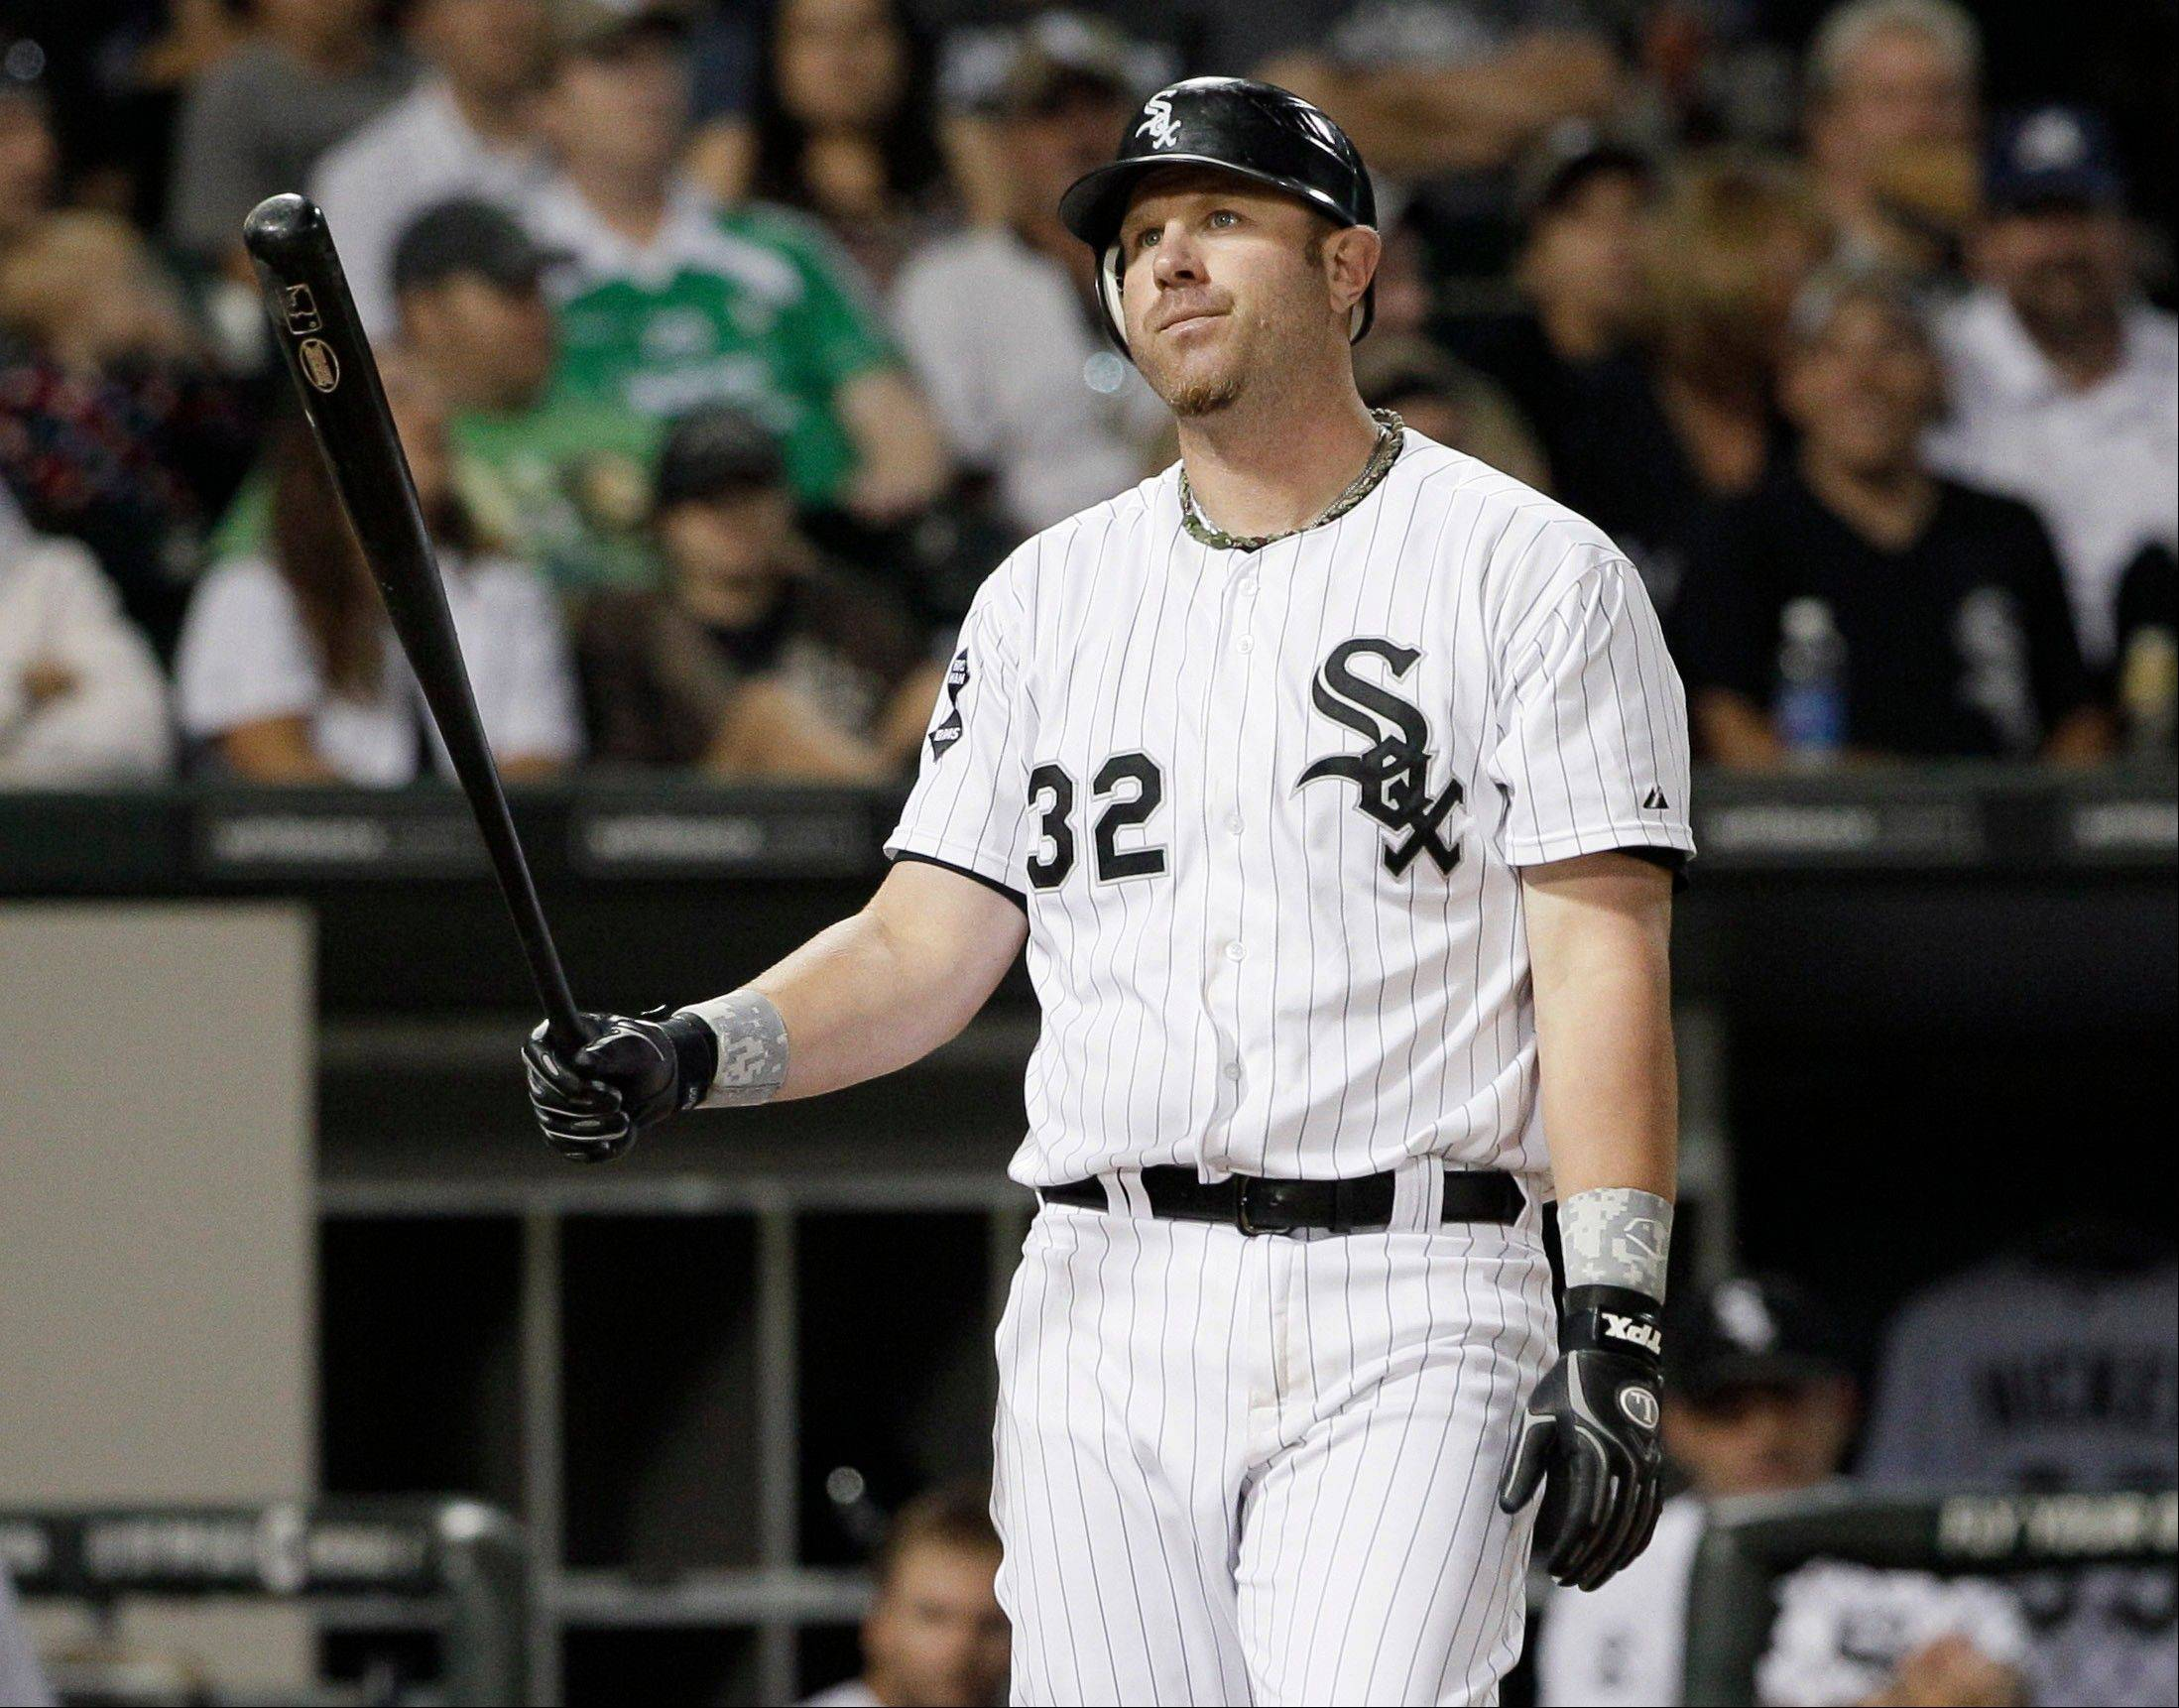 Adam Dunn reacts after striking out during the seventh inning of Saturday night's loss to the Athletics at U.S. Cellular Field.